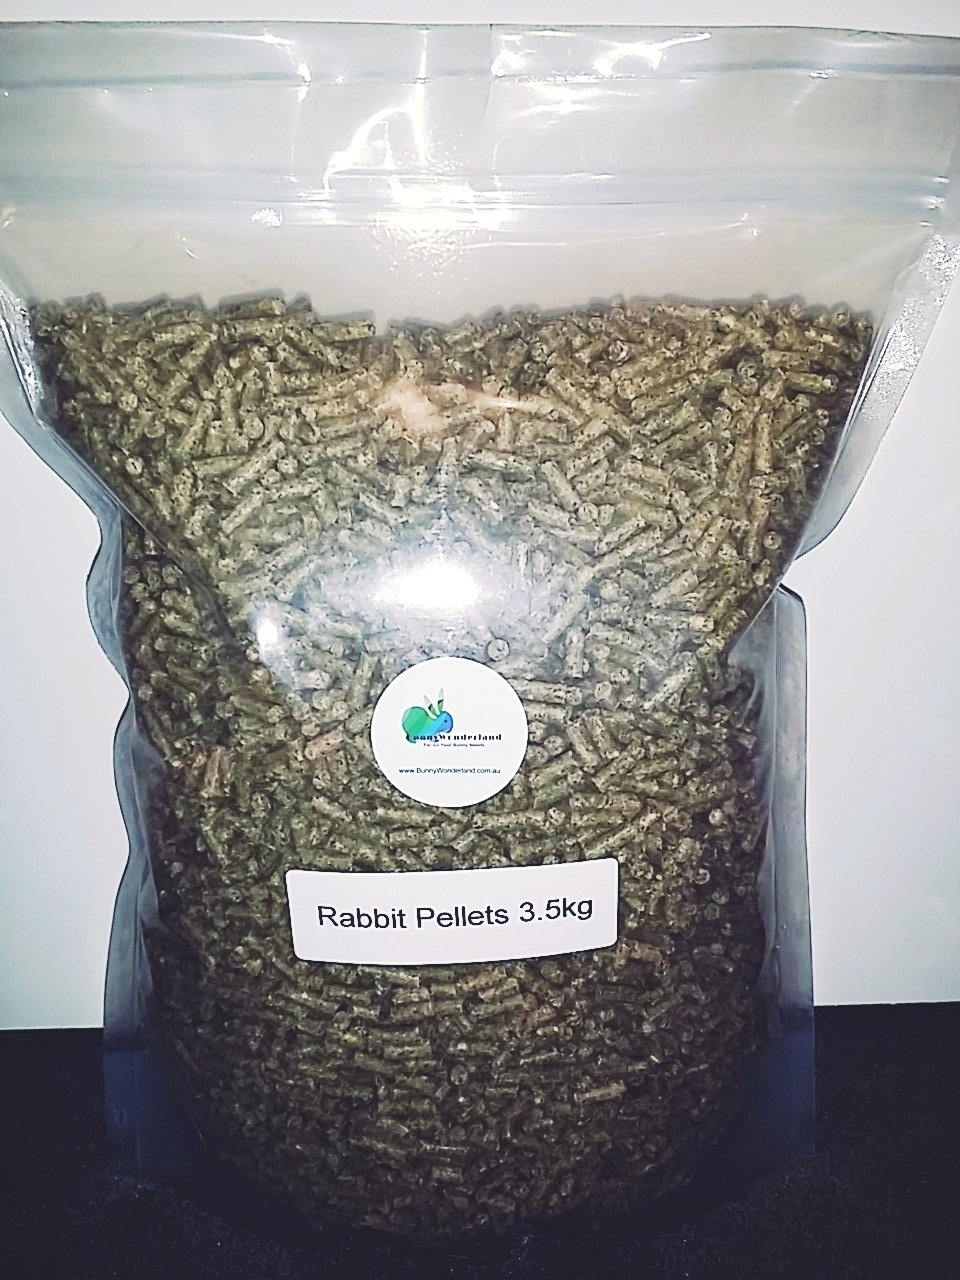 Barastoc Rabbit Pellets 3.5kg